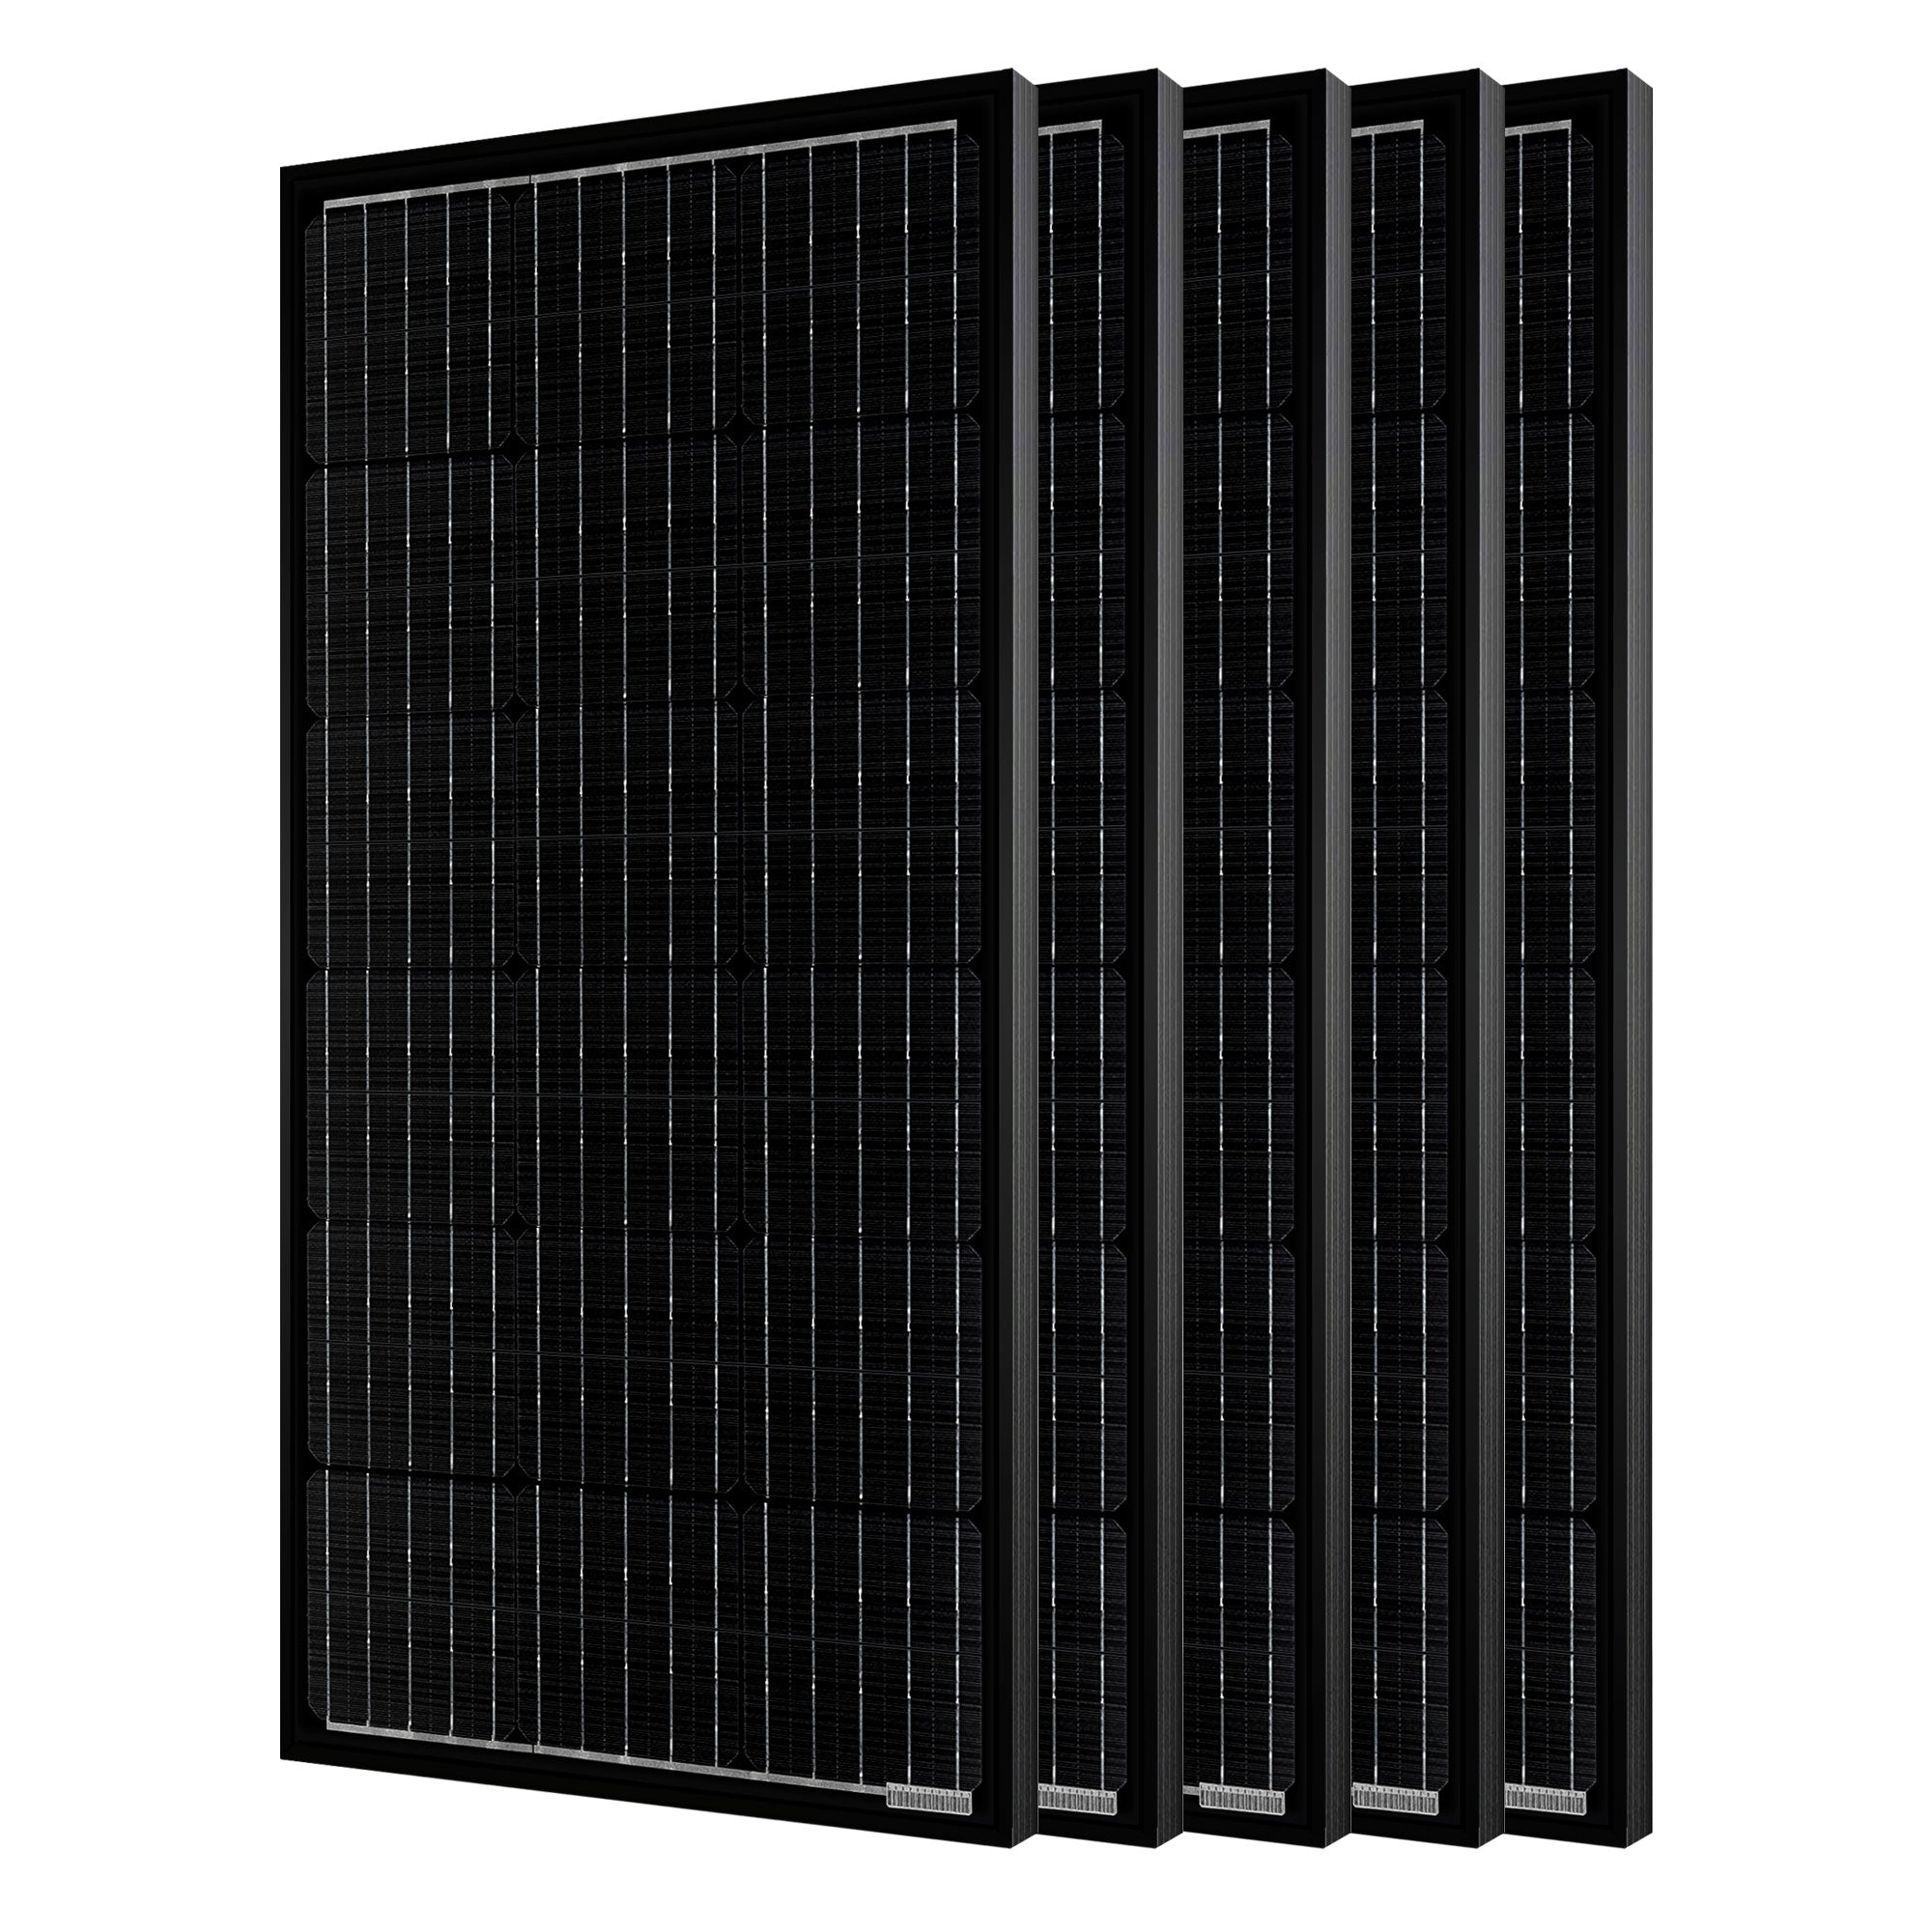 500W 12 Volt All Black Monocrystalline Solar Panel (5 Pack, 5x100W)